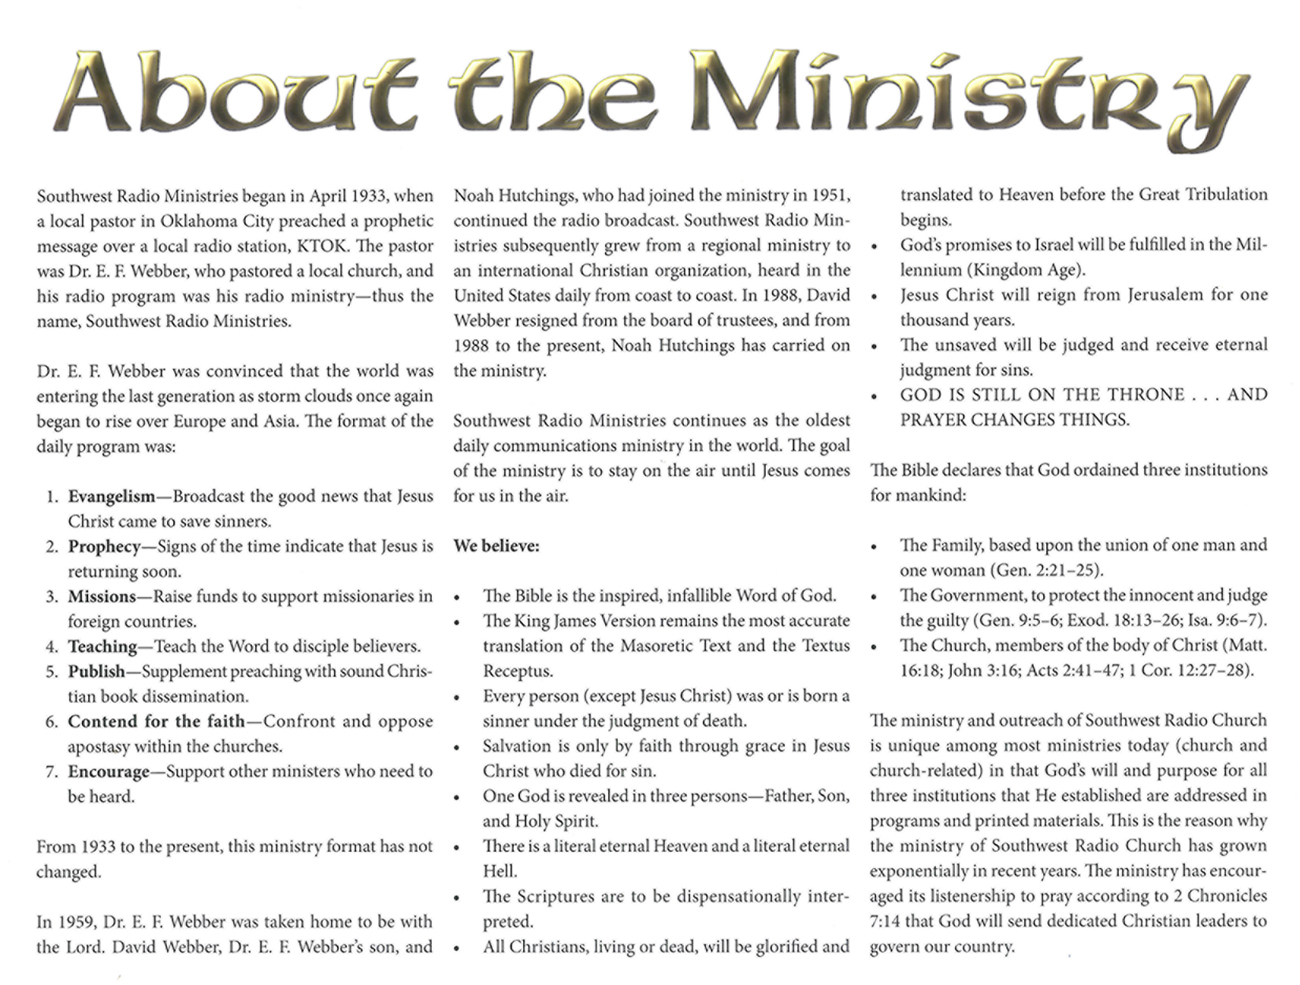 Inside Cover: 2013 Prophecy Calendar: About the Ministry